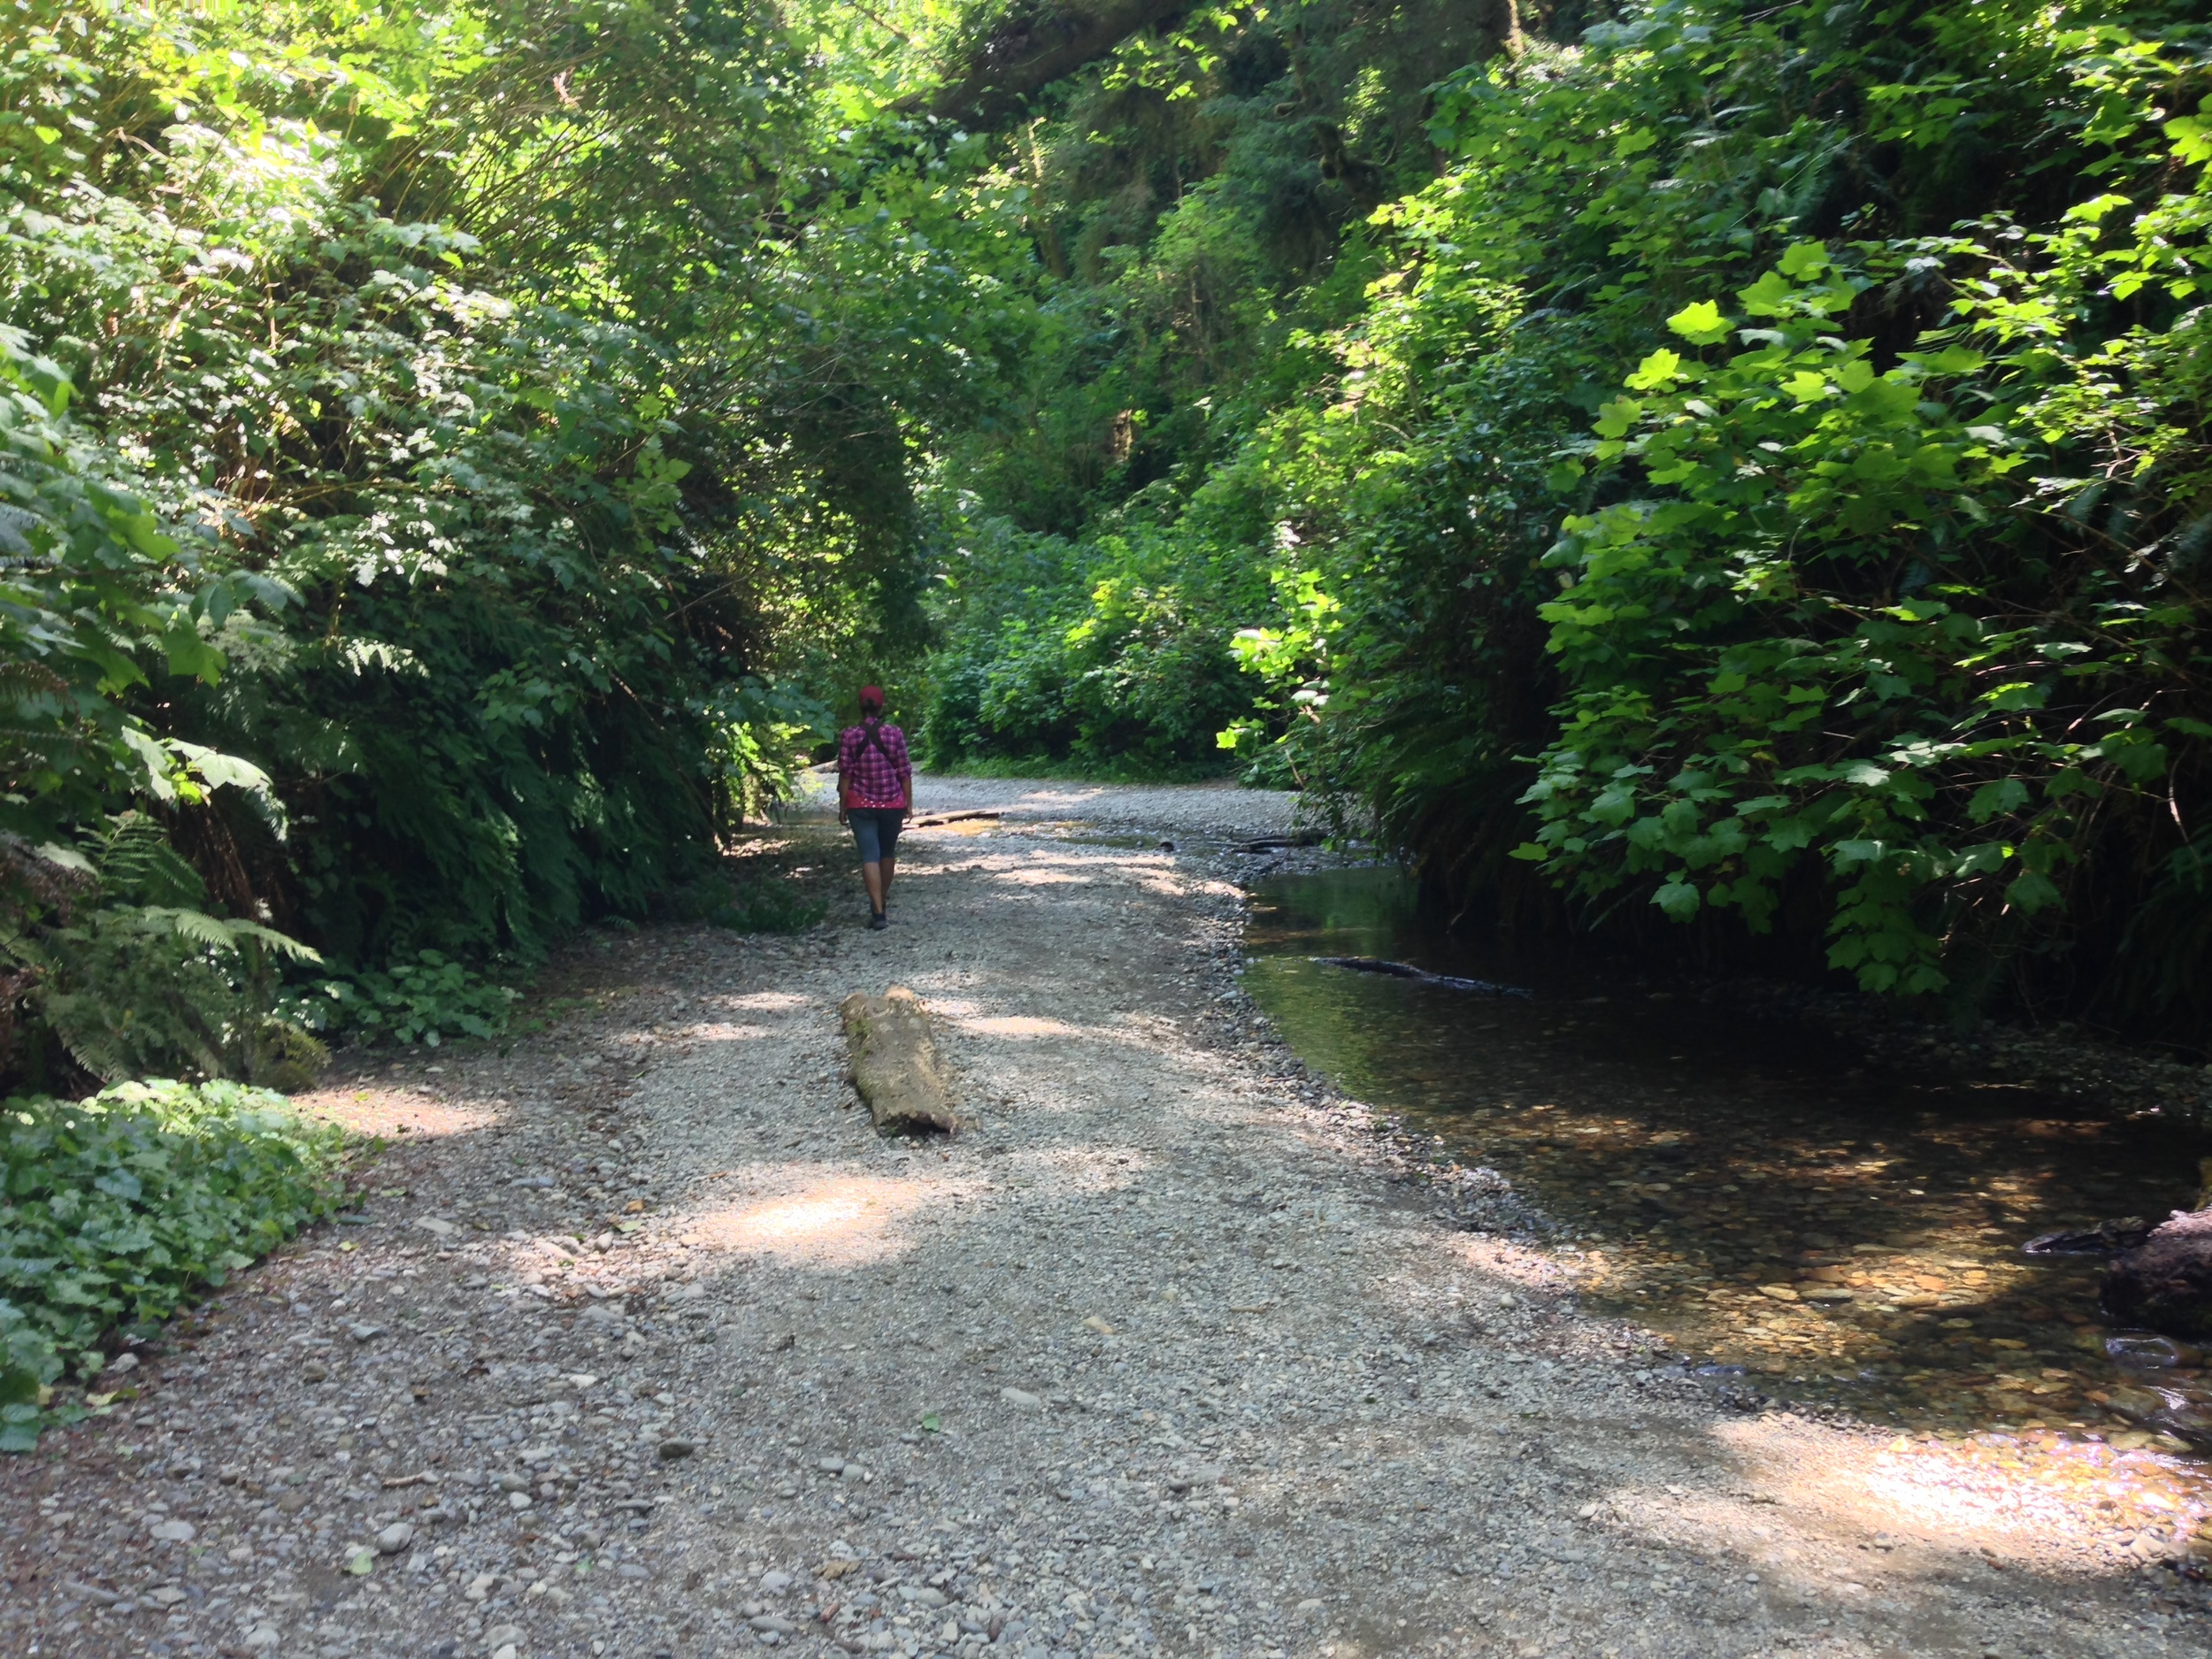 Entering Fern Canyon, July 2014